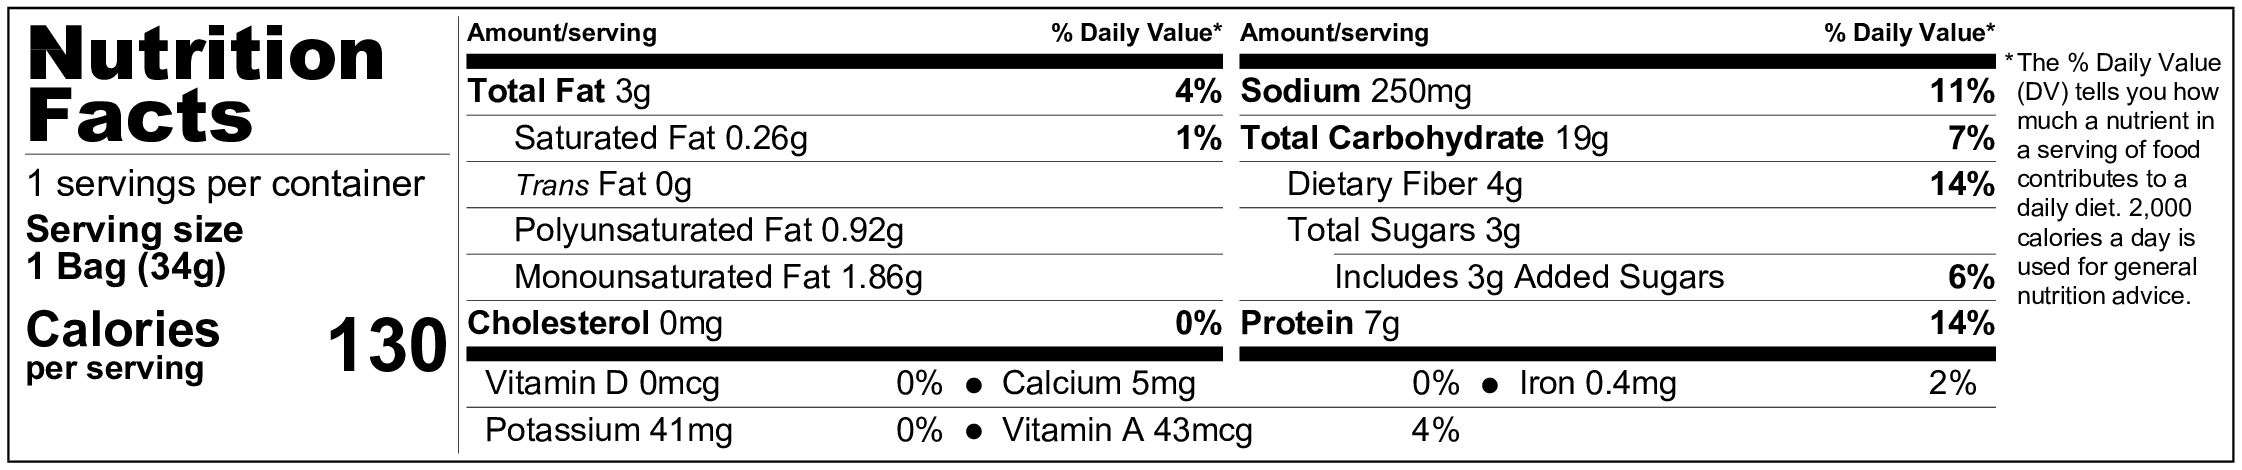 Nutrition facts PLANETARIANS Sunflower Chips Sweet & Smoky BBQ Horizontal.pdf.png